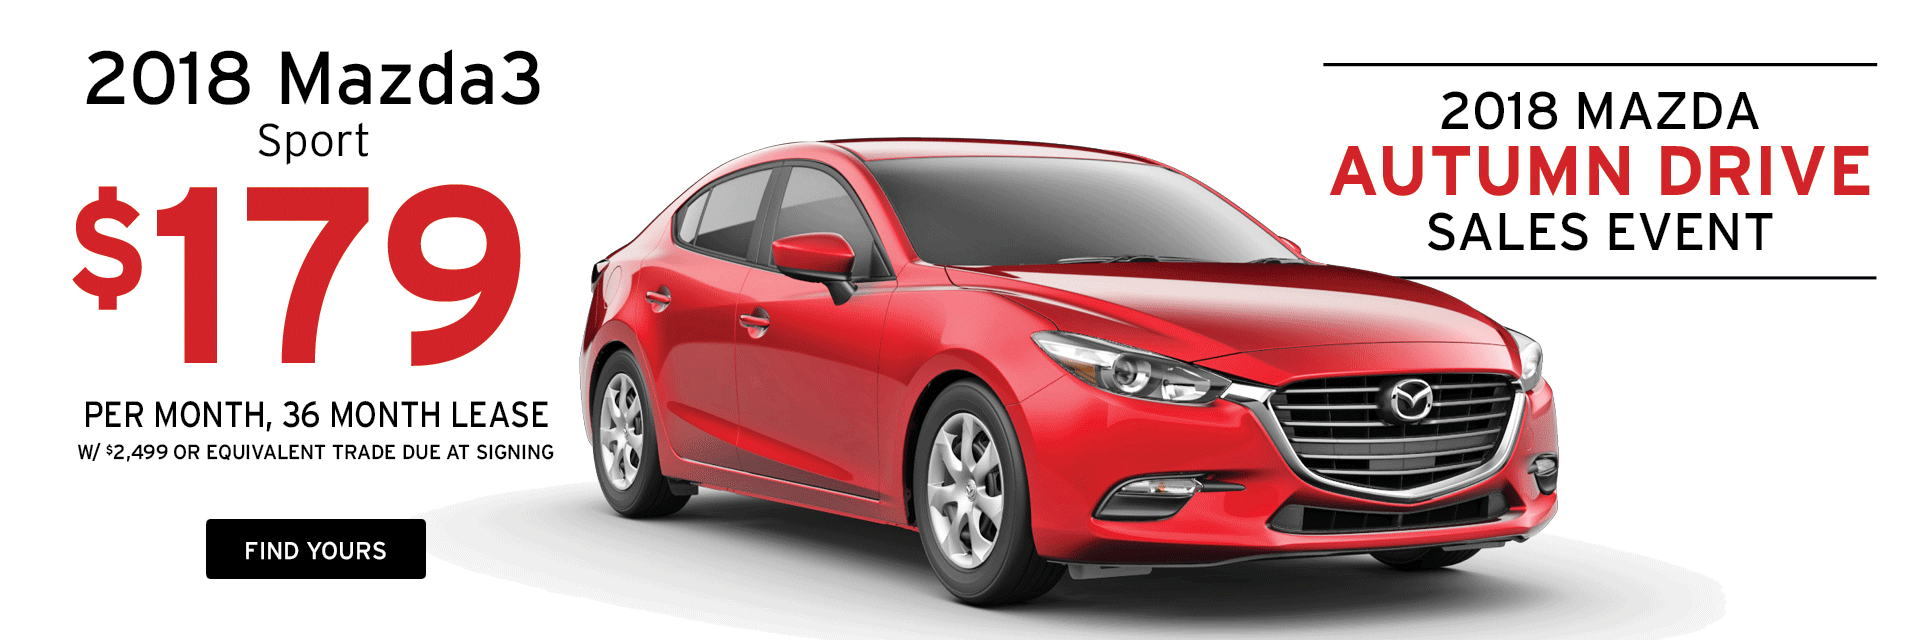 Lease a Mazda3 at Holiday Mazda in Fond du Lac, WI